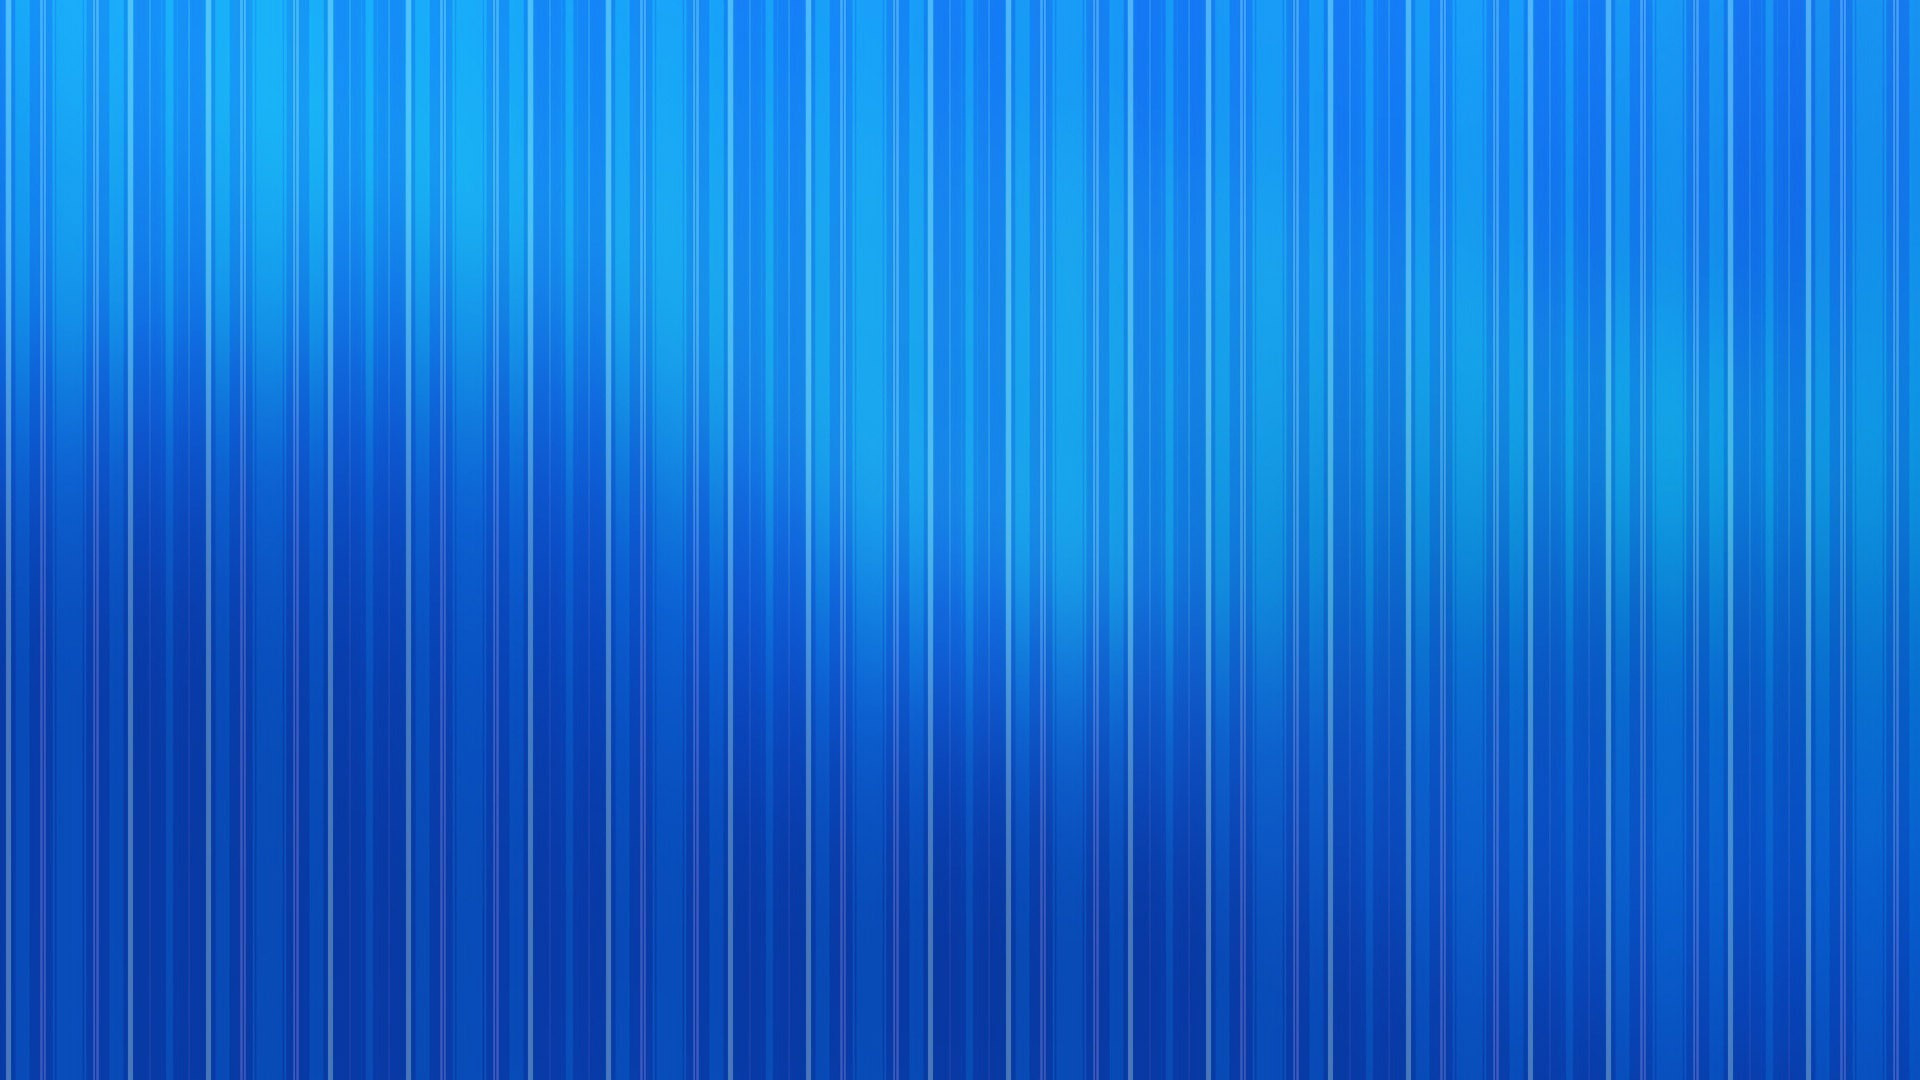 1920x1080 Free Blue Stripes Wallpaper